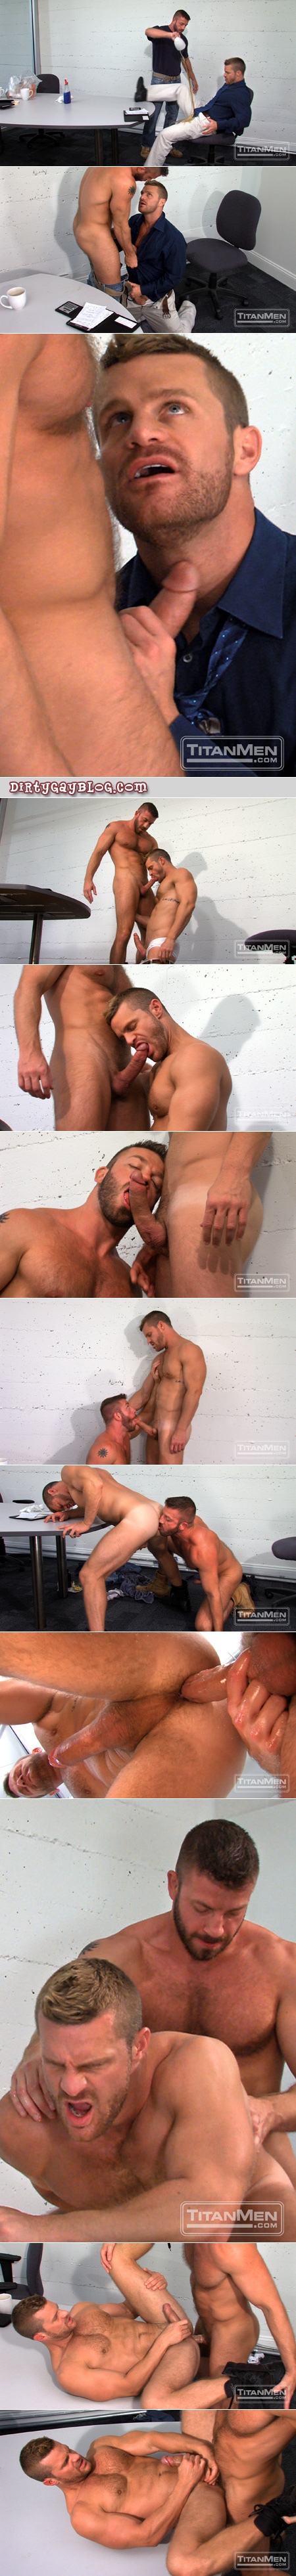 Beefy hairy office worker pours coffee on his boss' crotch to get him naked and ready to be fucked.